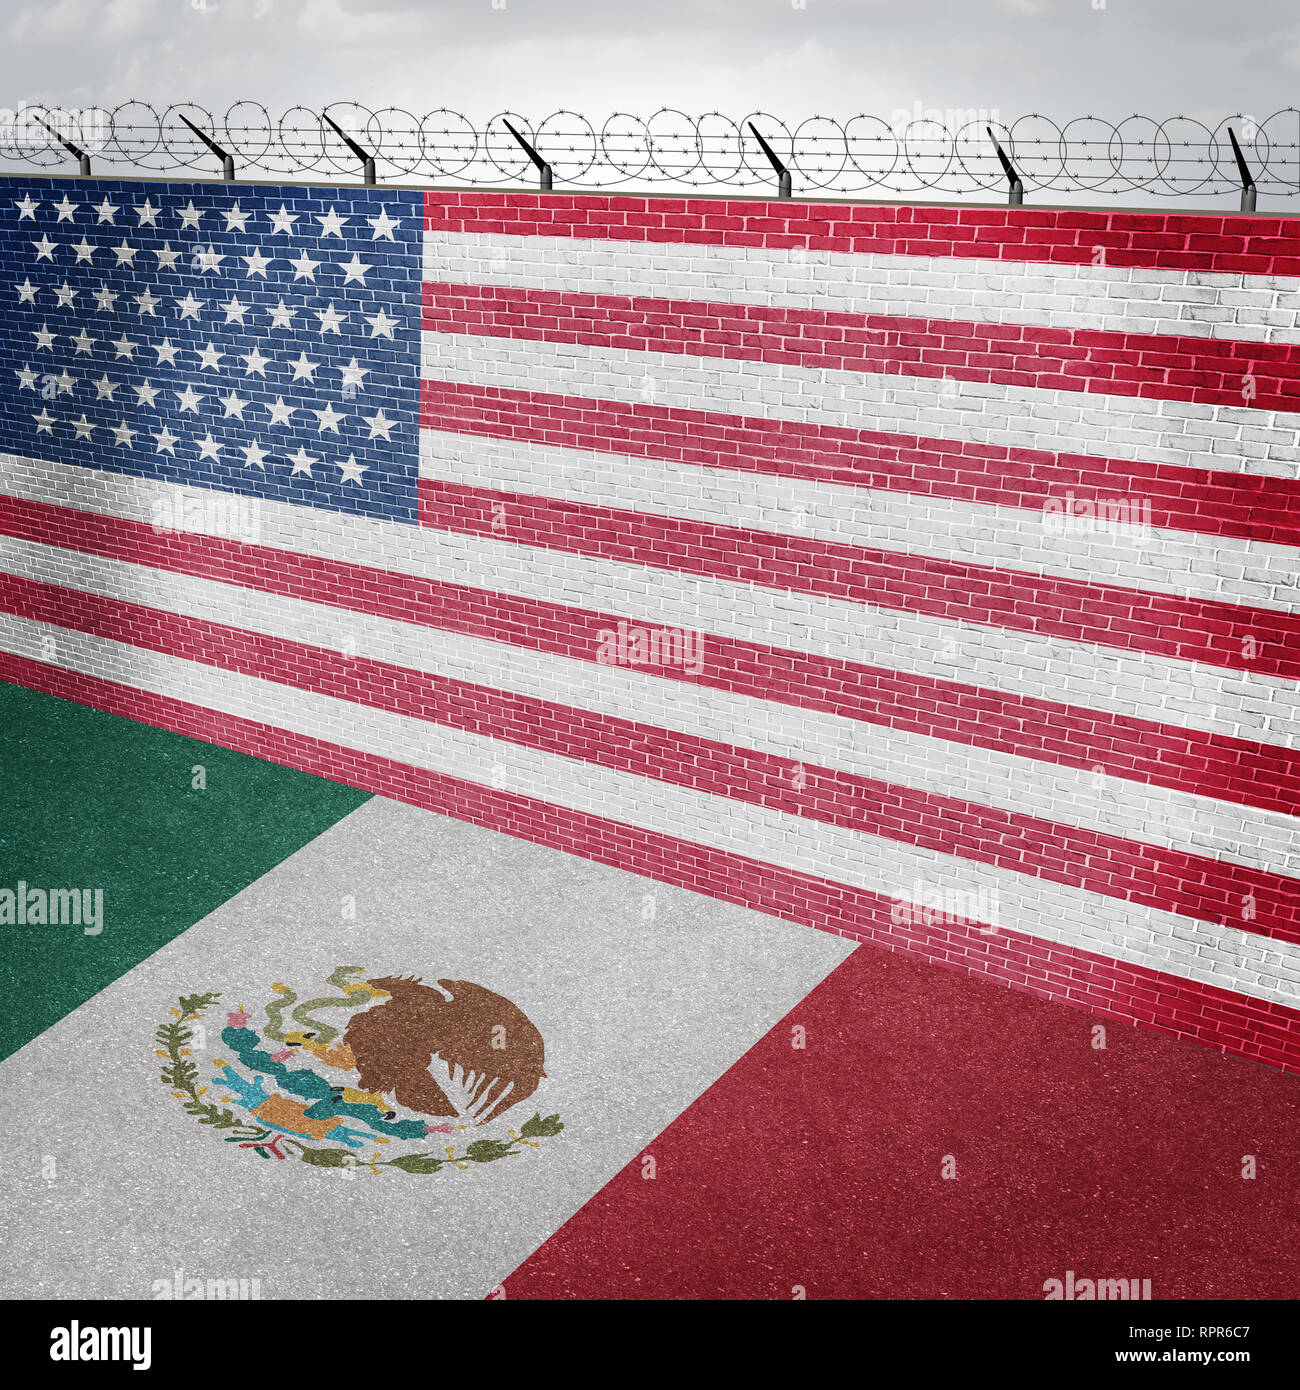 Mexico USA border wall and American homeland security along the Mexican boundary as a barrier to keep illegal immigrants out of the country. - Stock Image